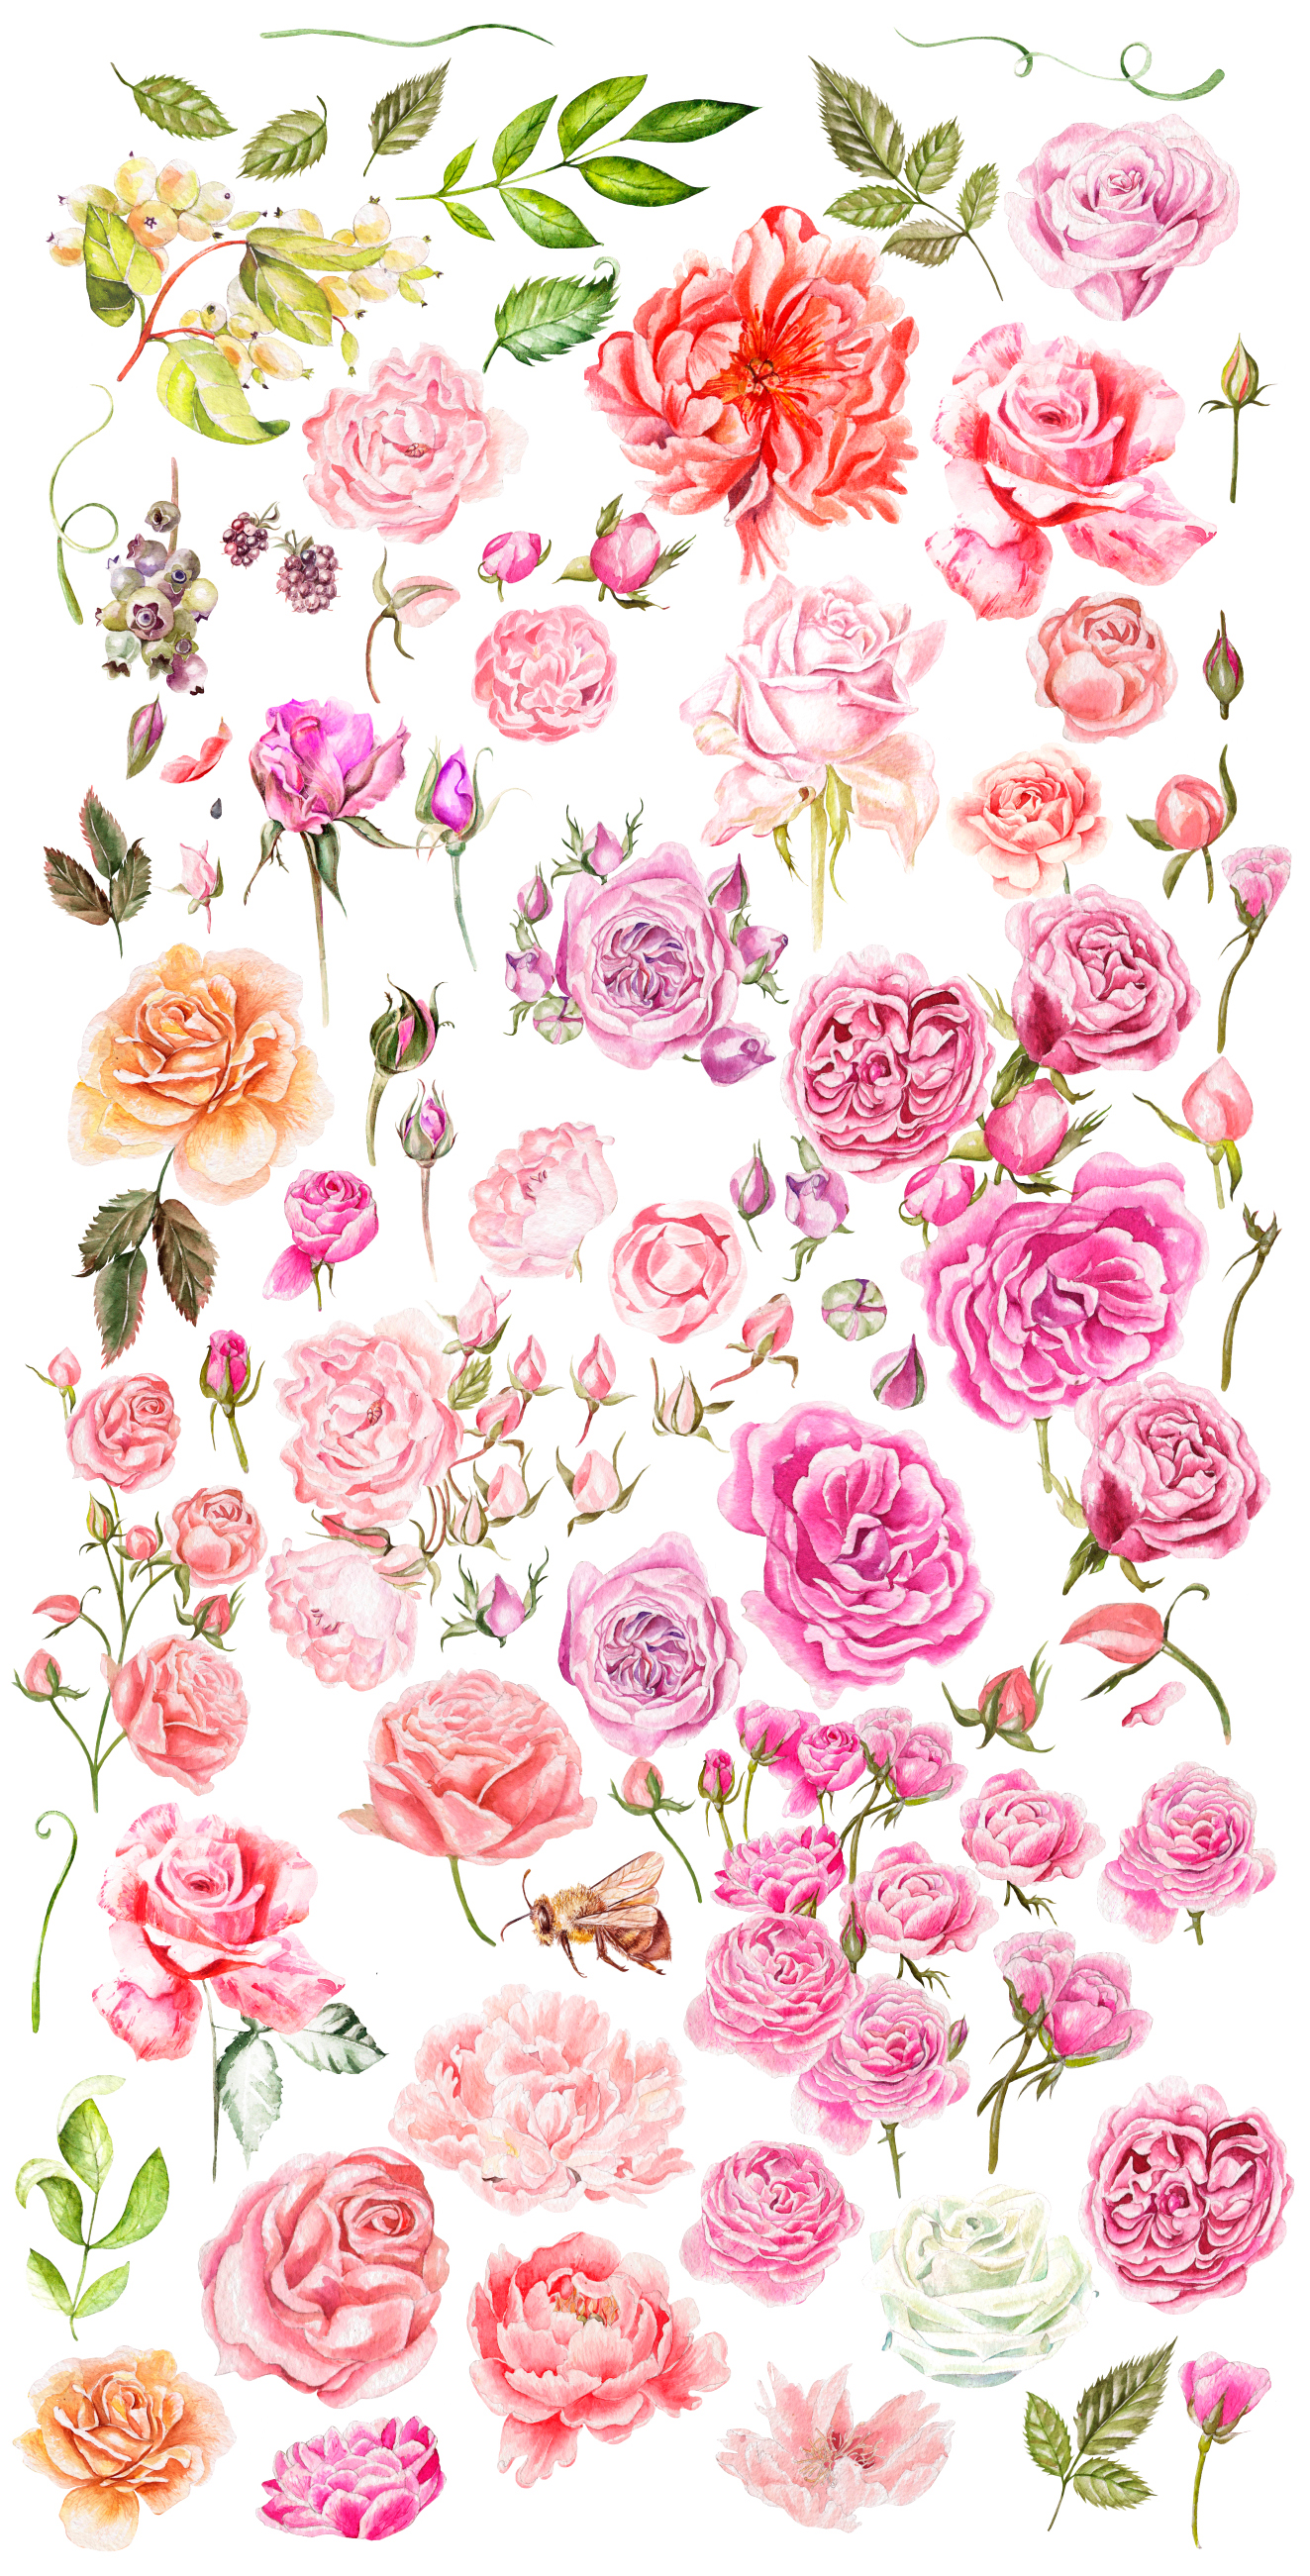 Hand drawn watercolor roses example image 4